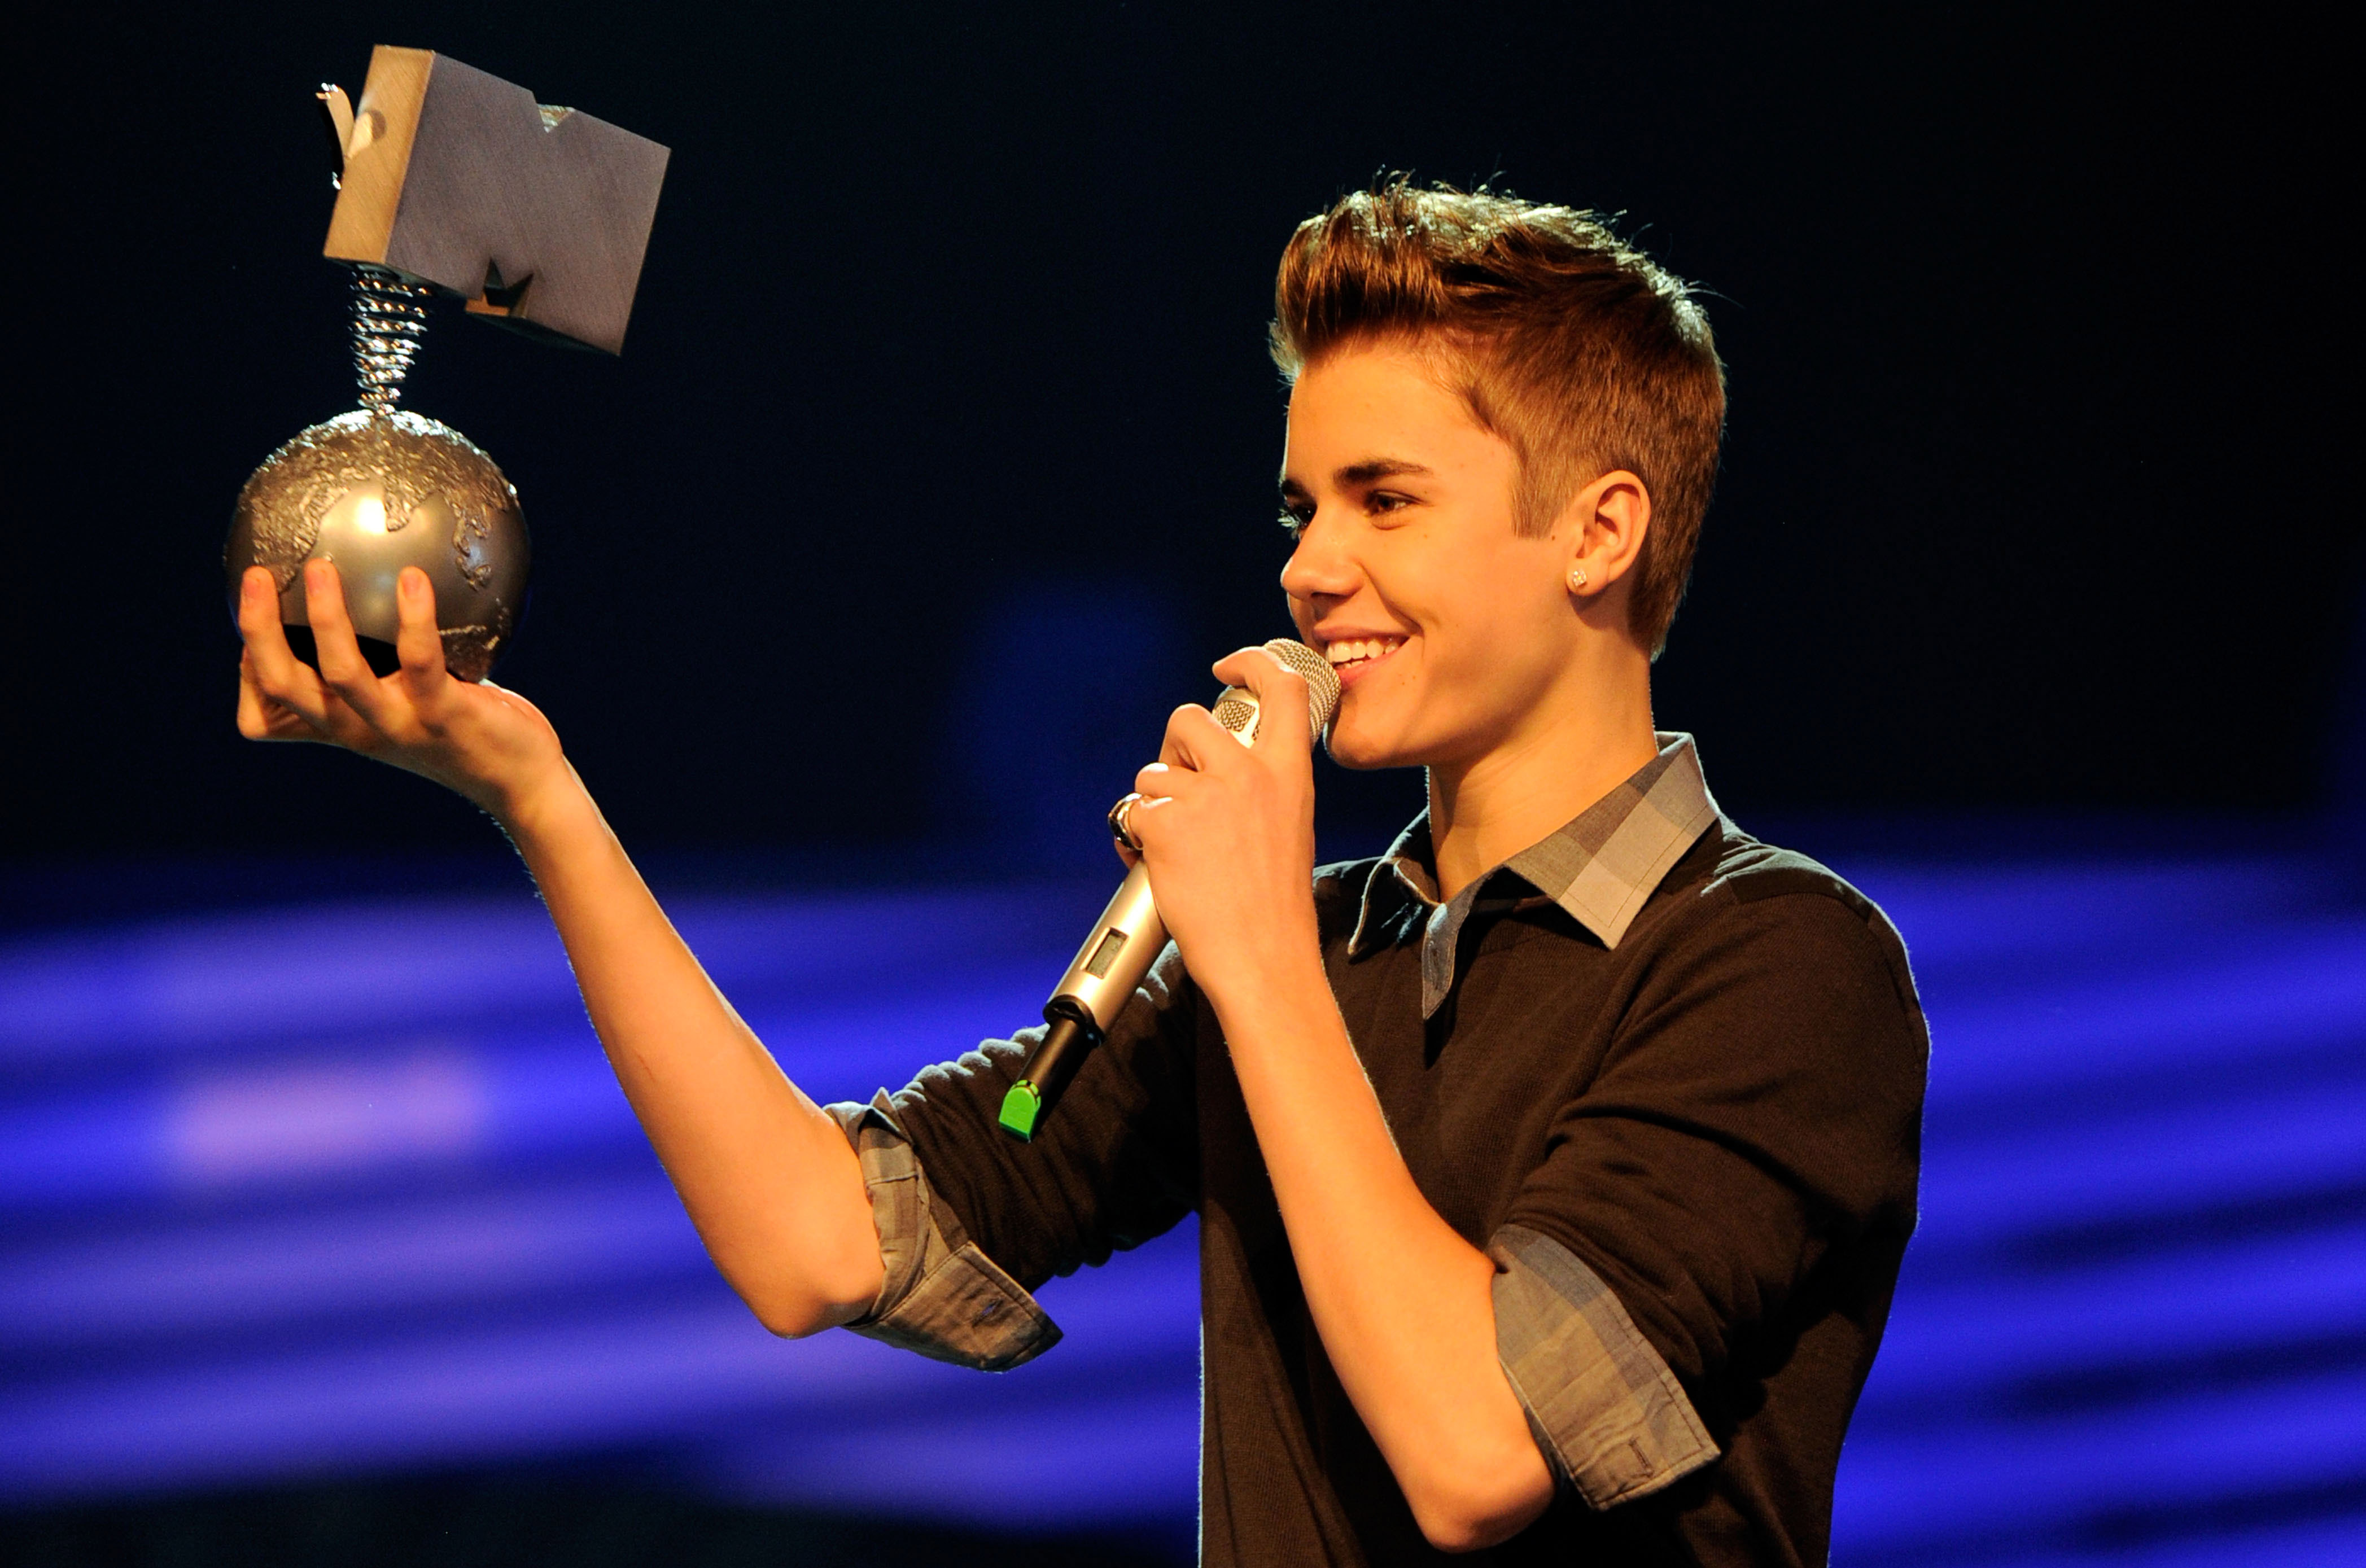 Justin Bieber held up his latest award.